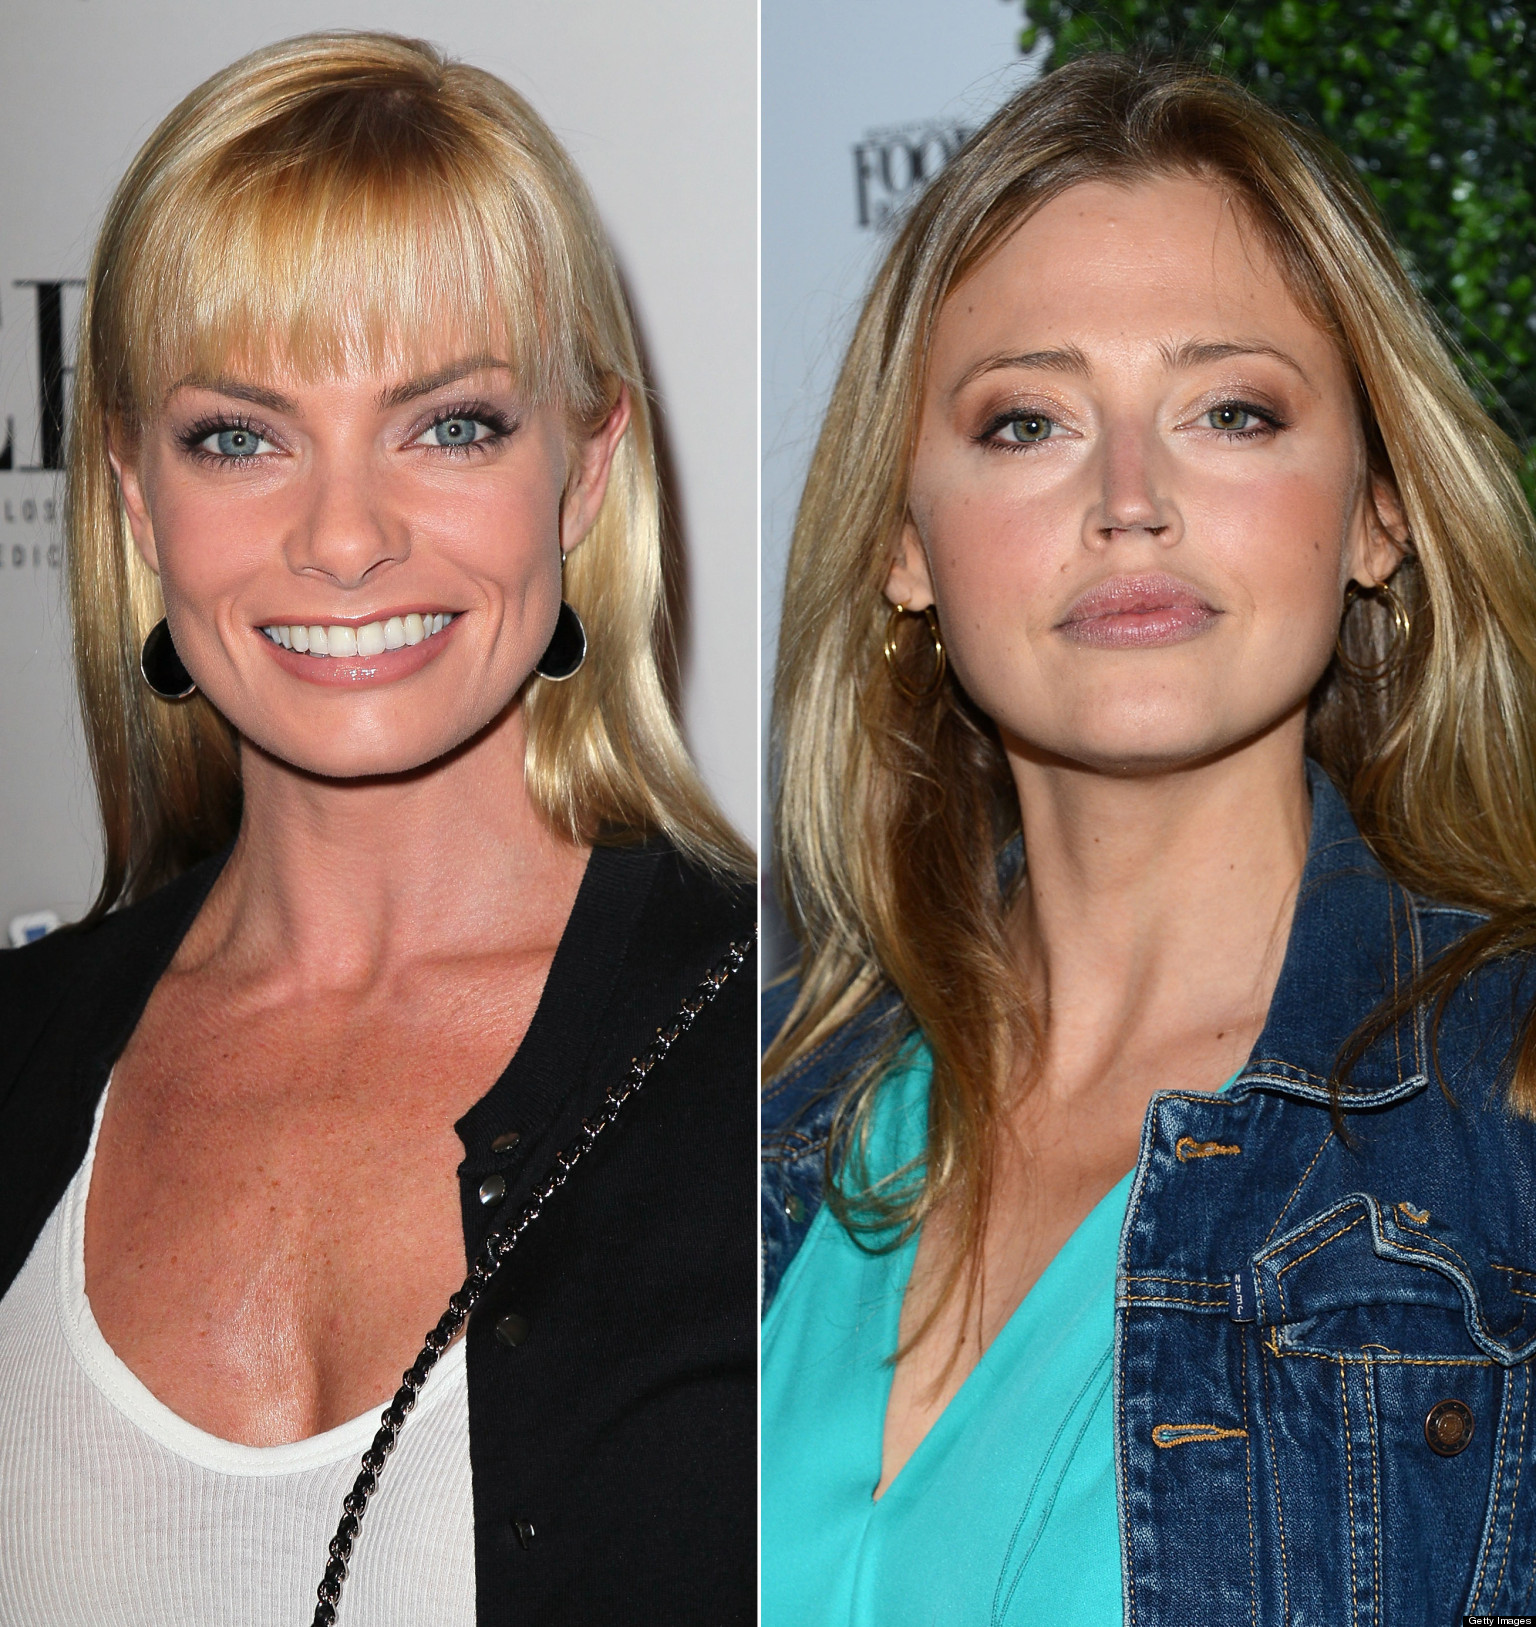 Jaime Pressly, Estella Warren Get Into Nasty Fight At Hollywood Hotspot